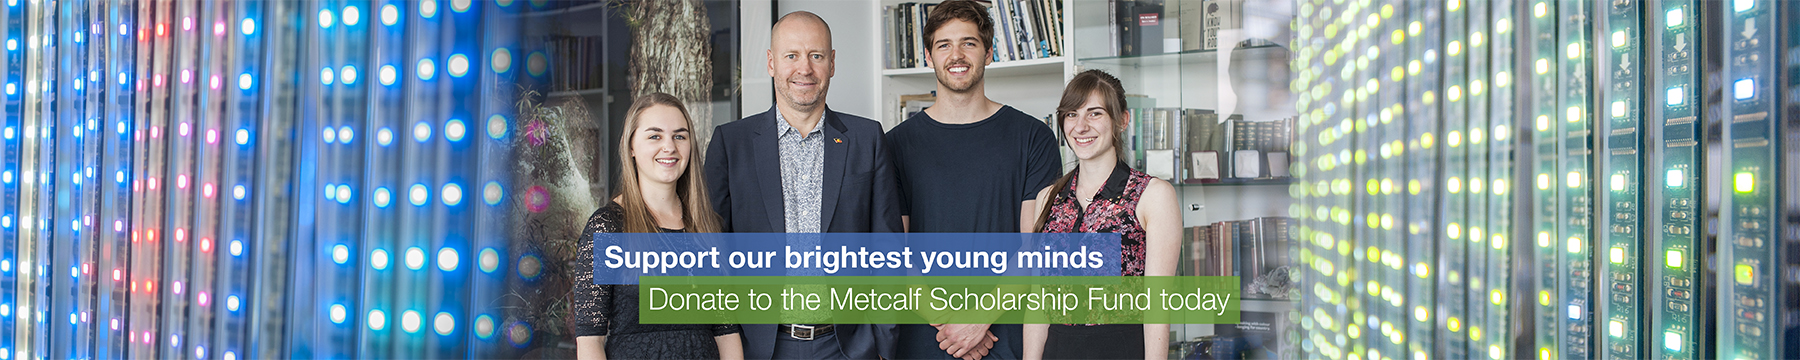 Support the Metcalf Scholarship Fund appeal